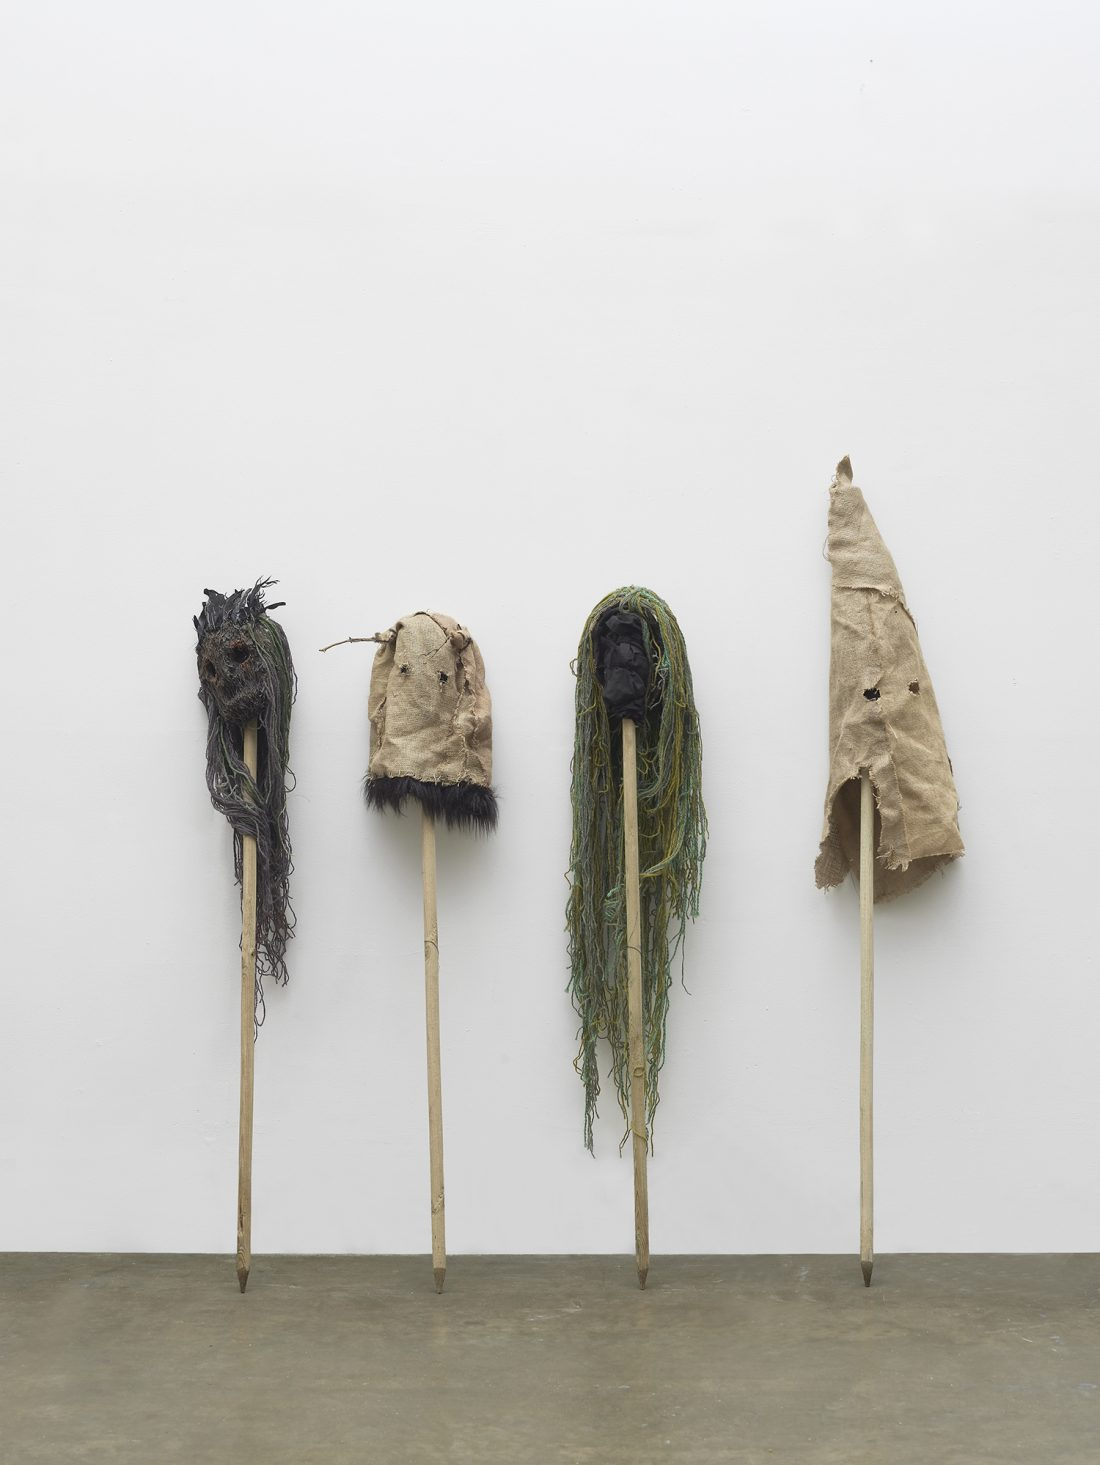 <p>Carrie Grainger, <em>The forest has eyes</em>, 2017, Hessian, wood, yarn, plaster, hot melt, horse hair, feathers, twigs and soil, 200 x 180cm x 30 cm (each)</p>